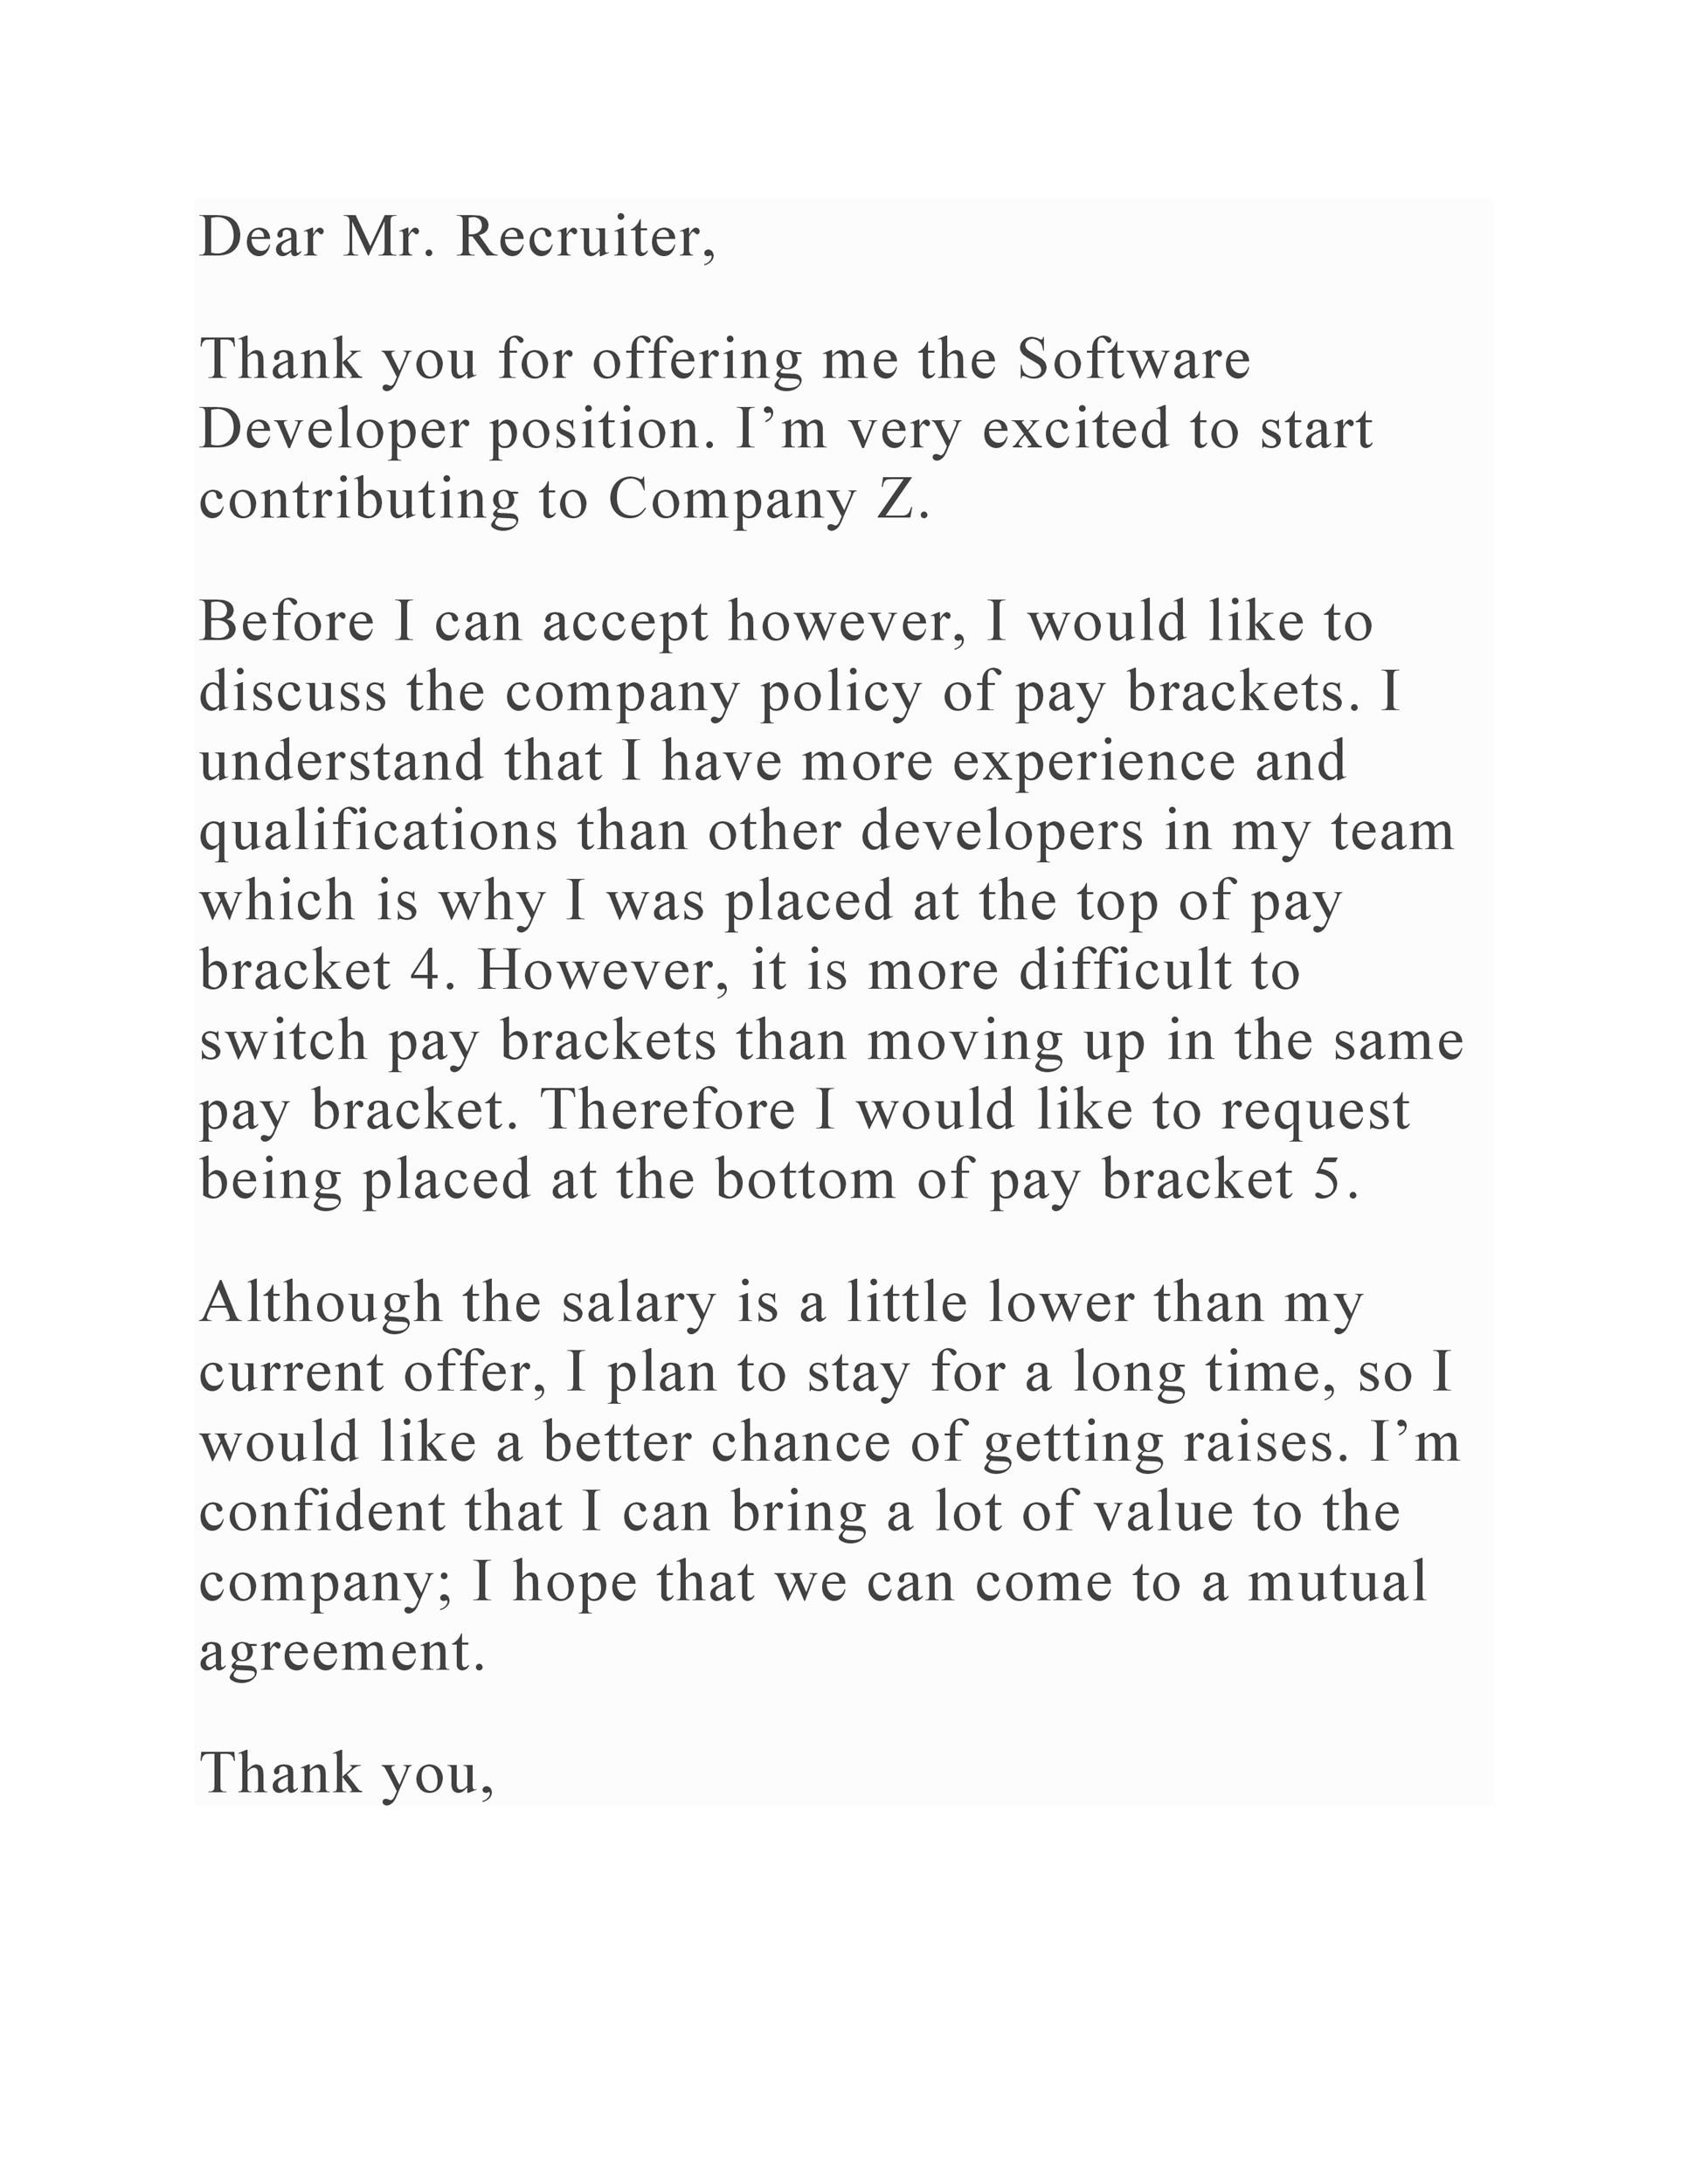 Free salary negotiation letter 16